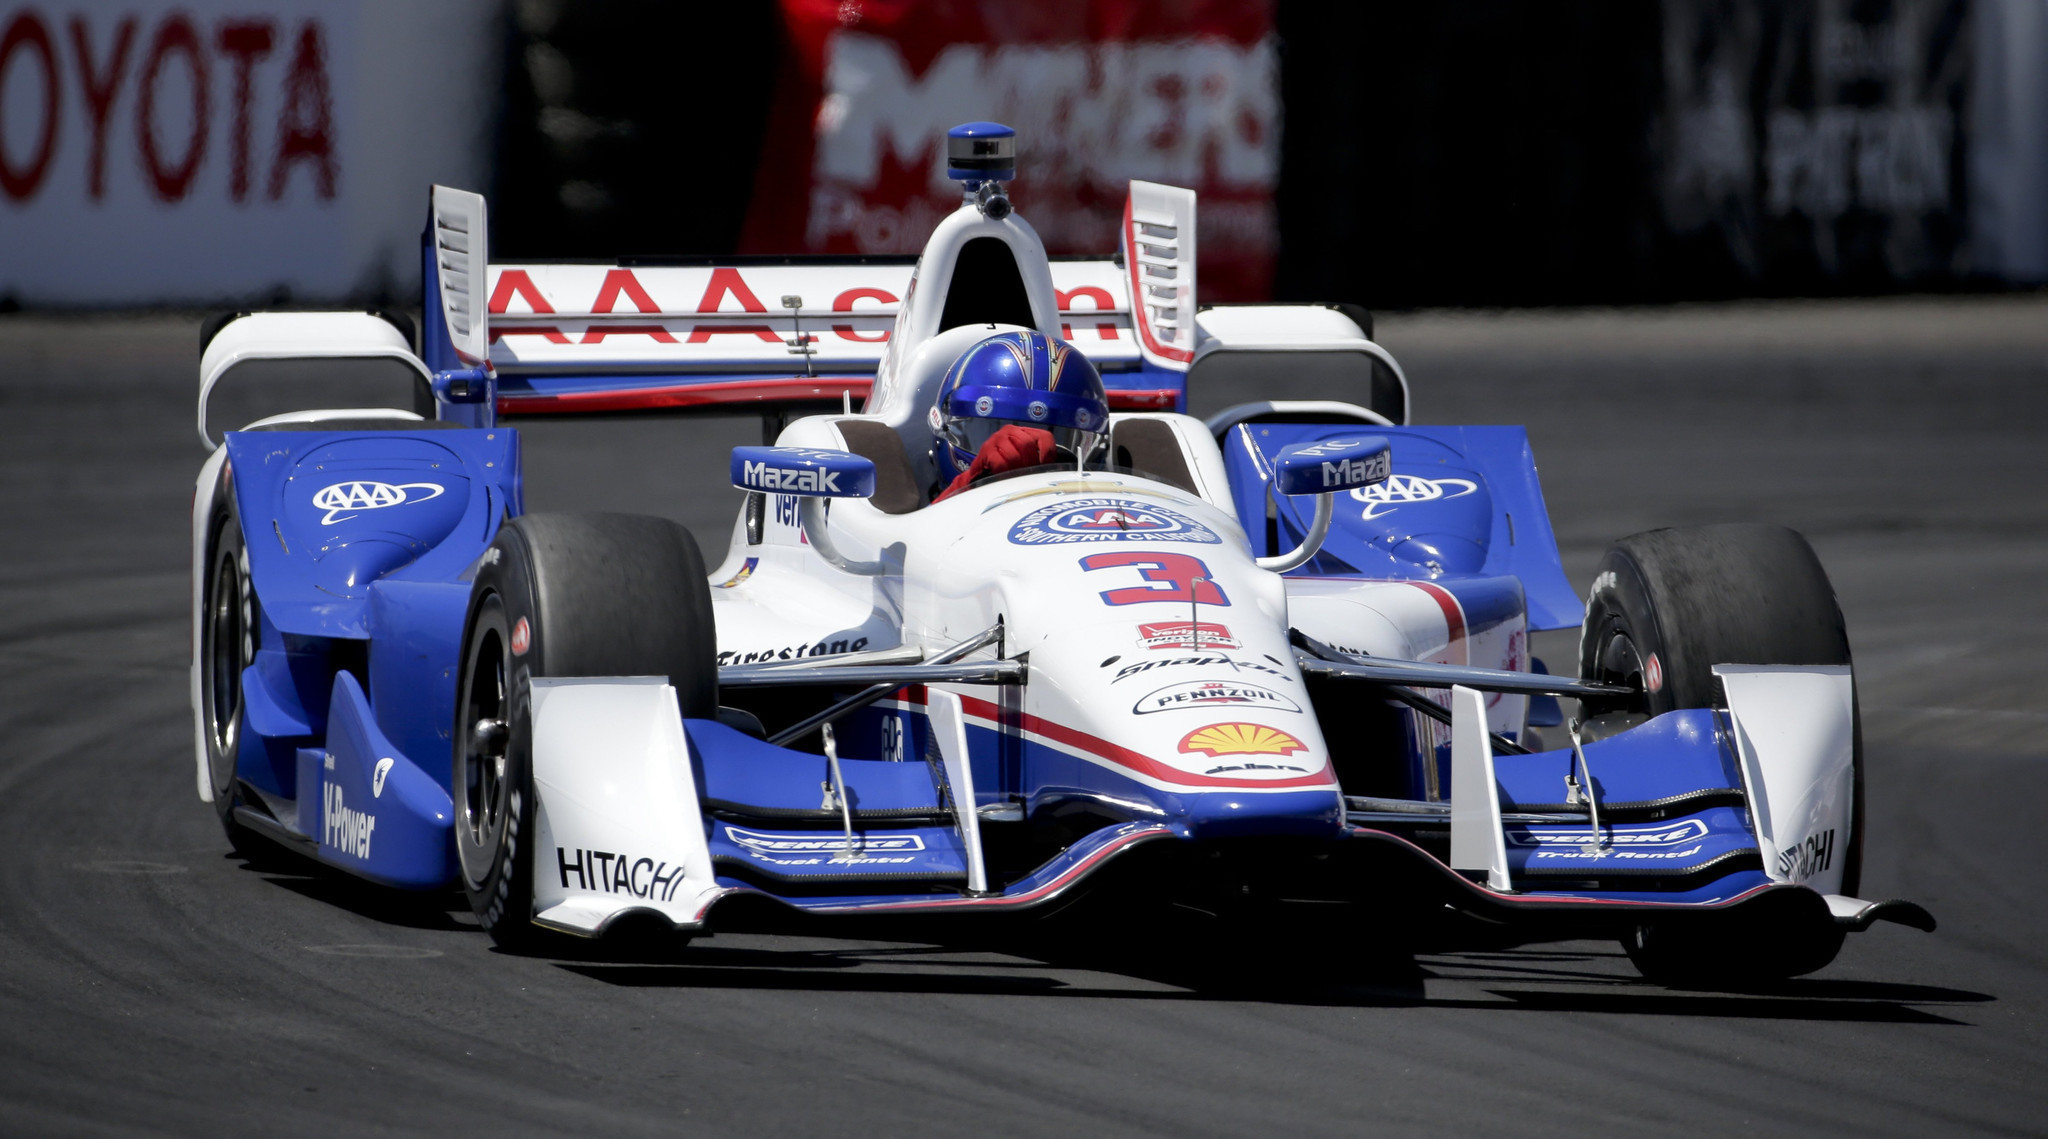 Helio Castroneves wins pole for Long Beach Grand Prix in record time